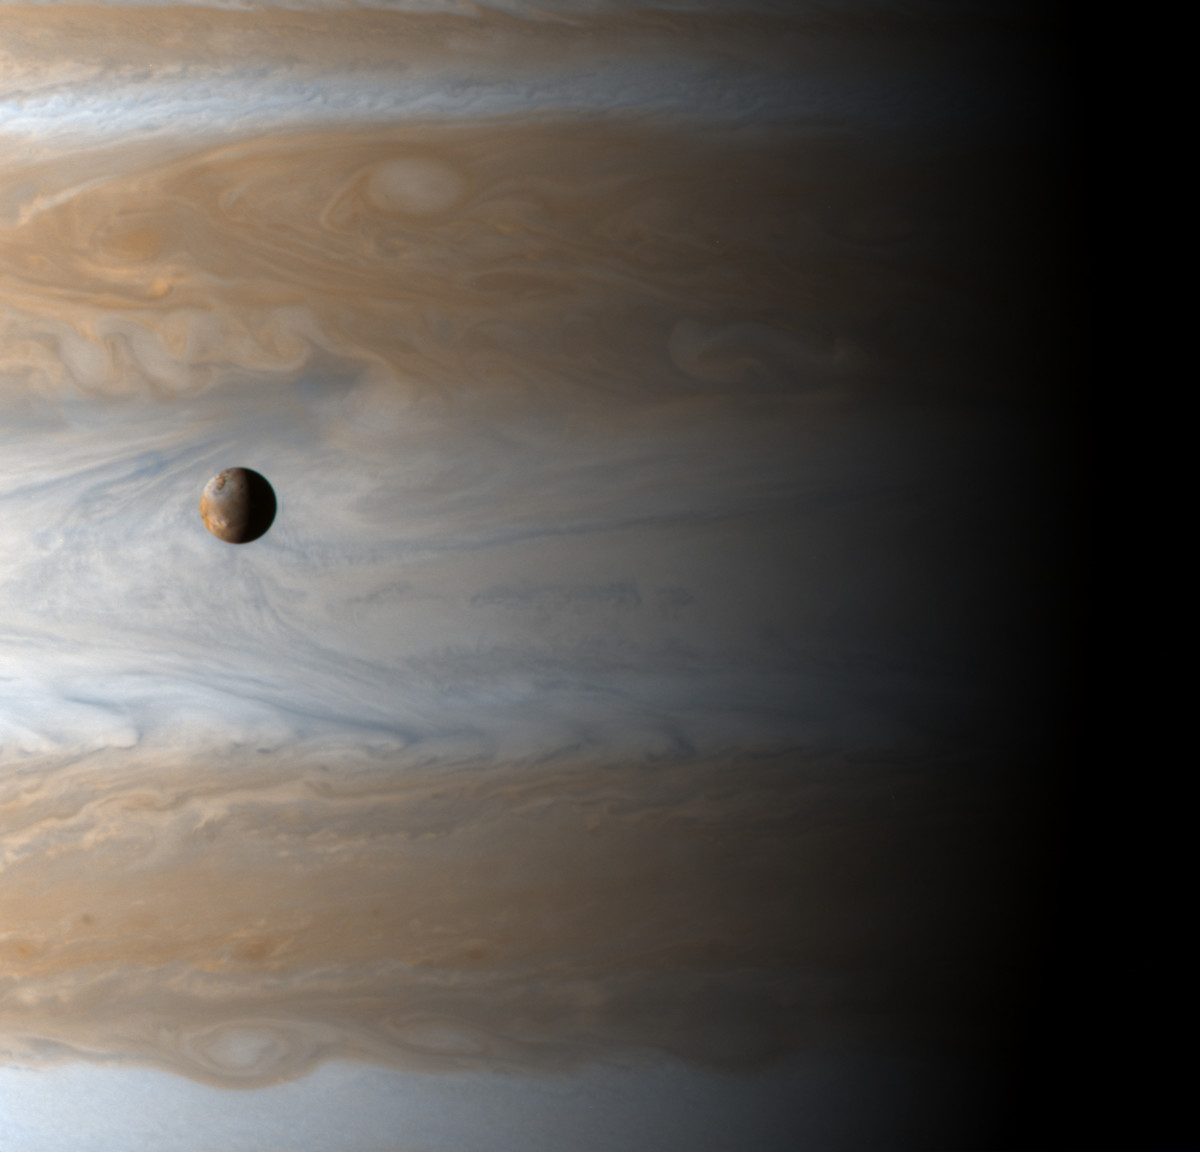 Up-close view of Jupiter and one of its moons.